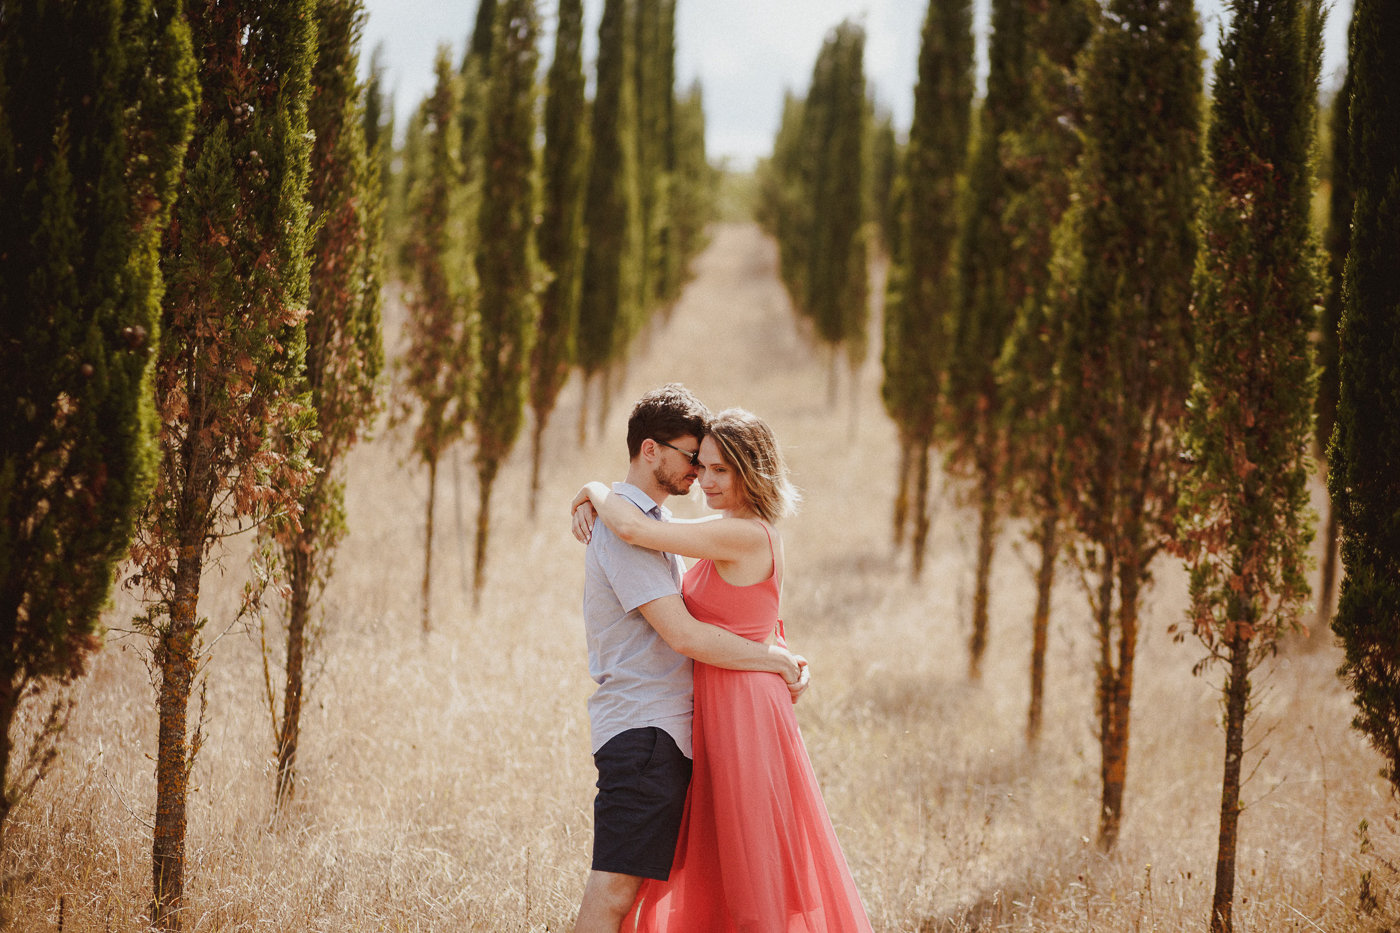 pre-wedding-photography-tuscany-19.jpg